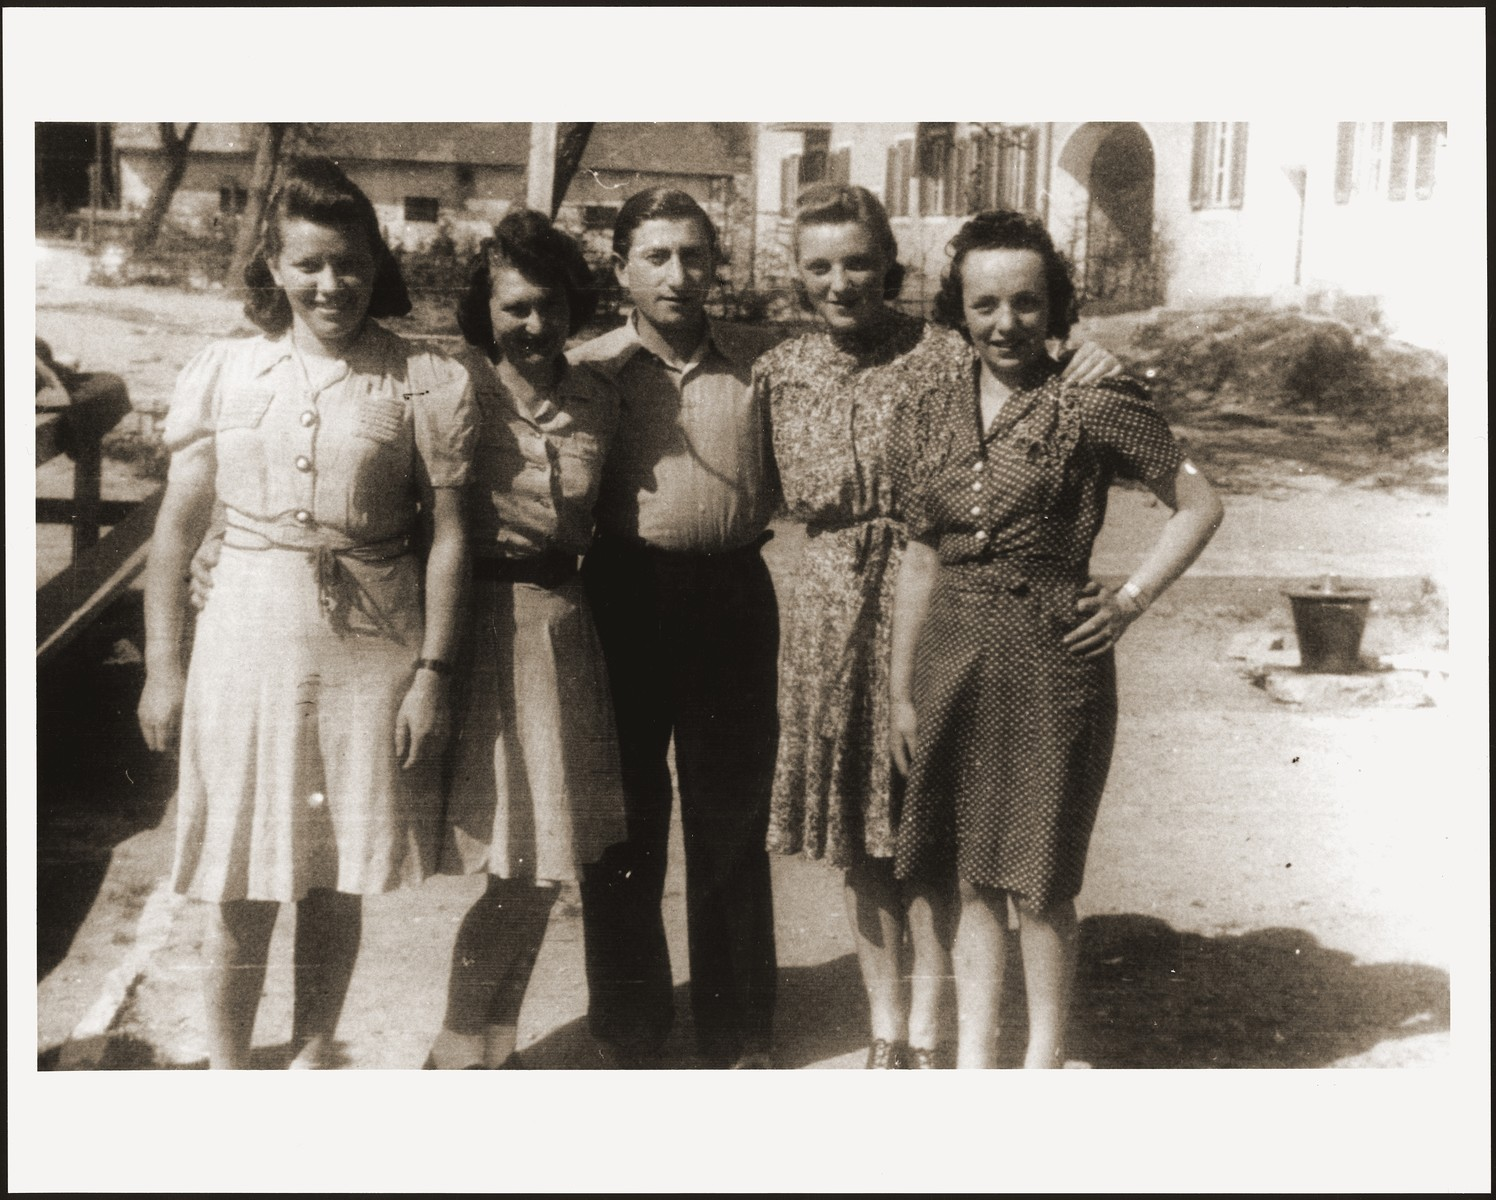 Group portrait of Jewish DPs in the  New Palestine displaced persons camp near Salzburg.   Pictured from left to right are: Regina (from Chrzanow), Mania Reichman (from Bielsko Biala), Moniek Rozen (from Dabrowa Gornicza), Lola Lerer (from Lodz) and Herta Munk-Zauberman.